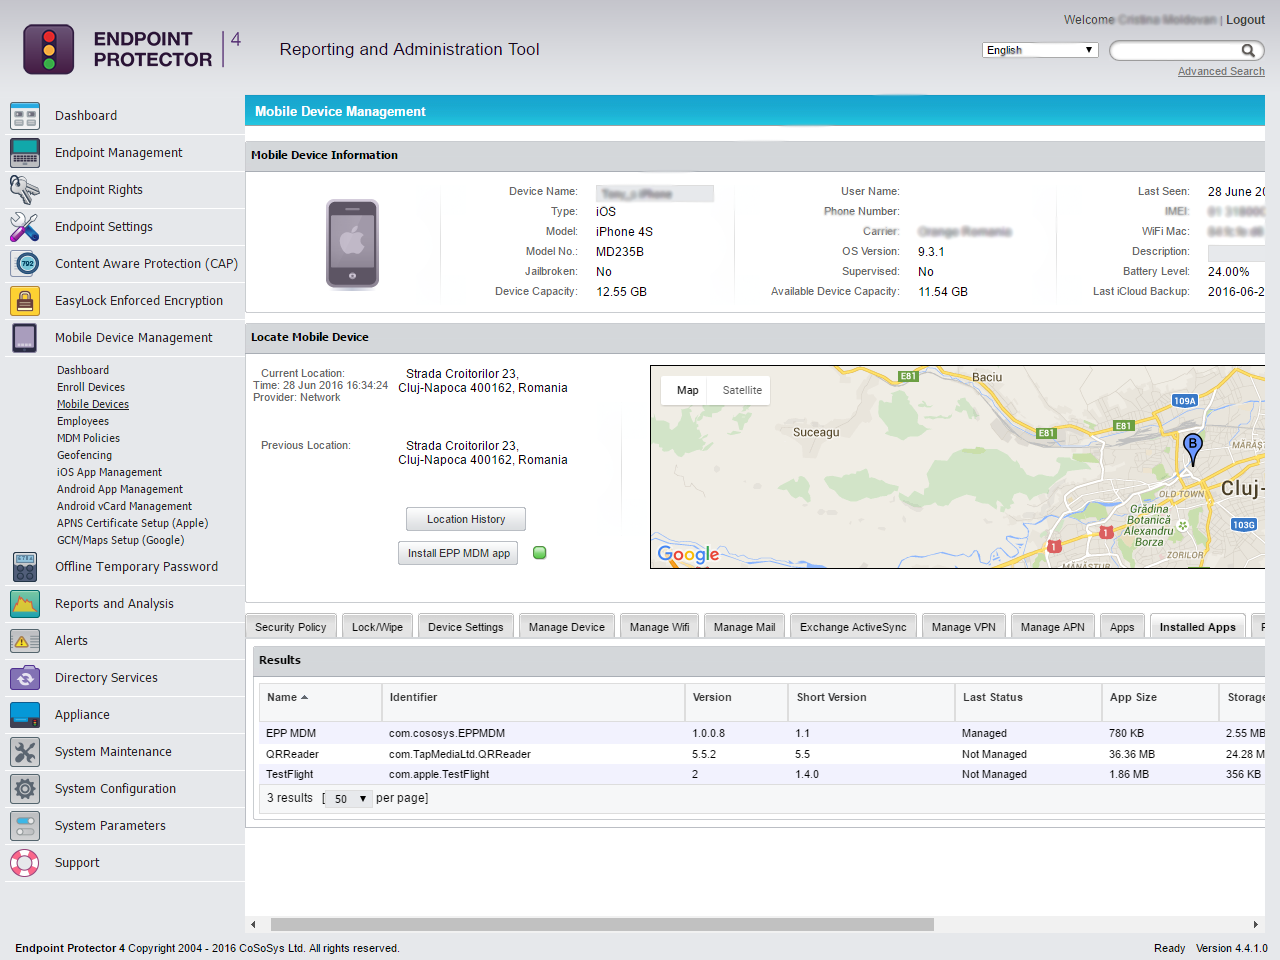 Endpoint Protector 4 - Mobile Device Management